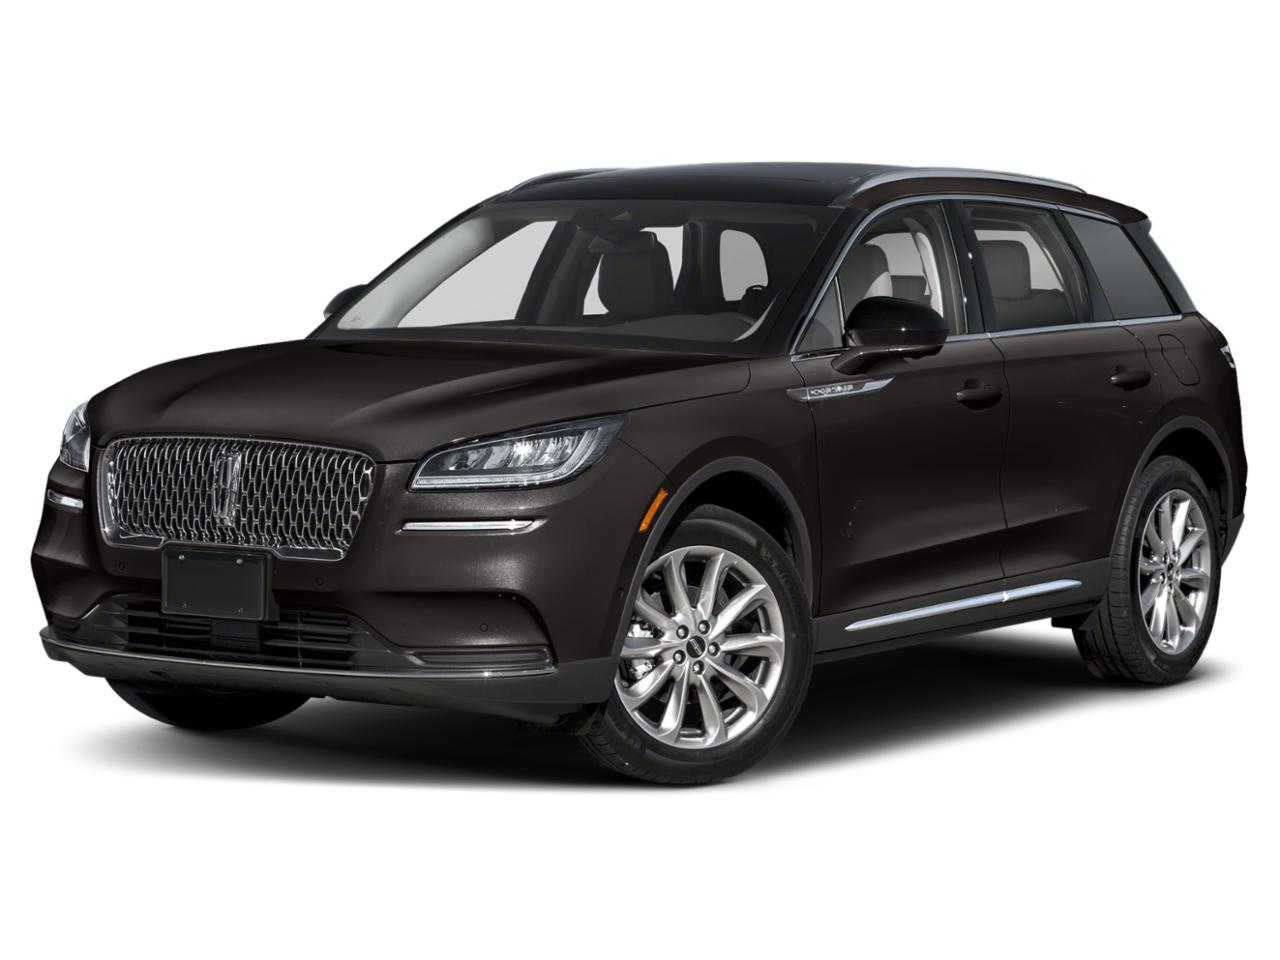 2020 LINCOLN Corsair Vehicle Photo in Neenah, WI 54956-3151